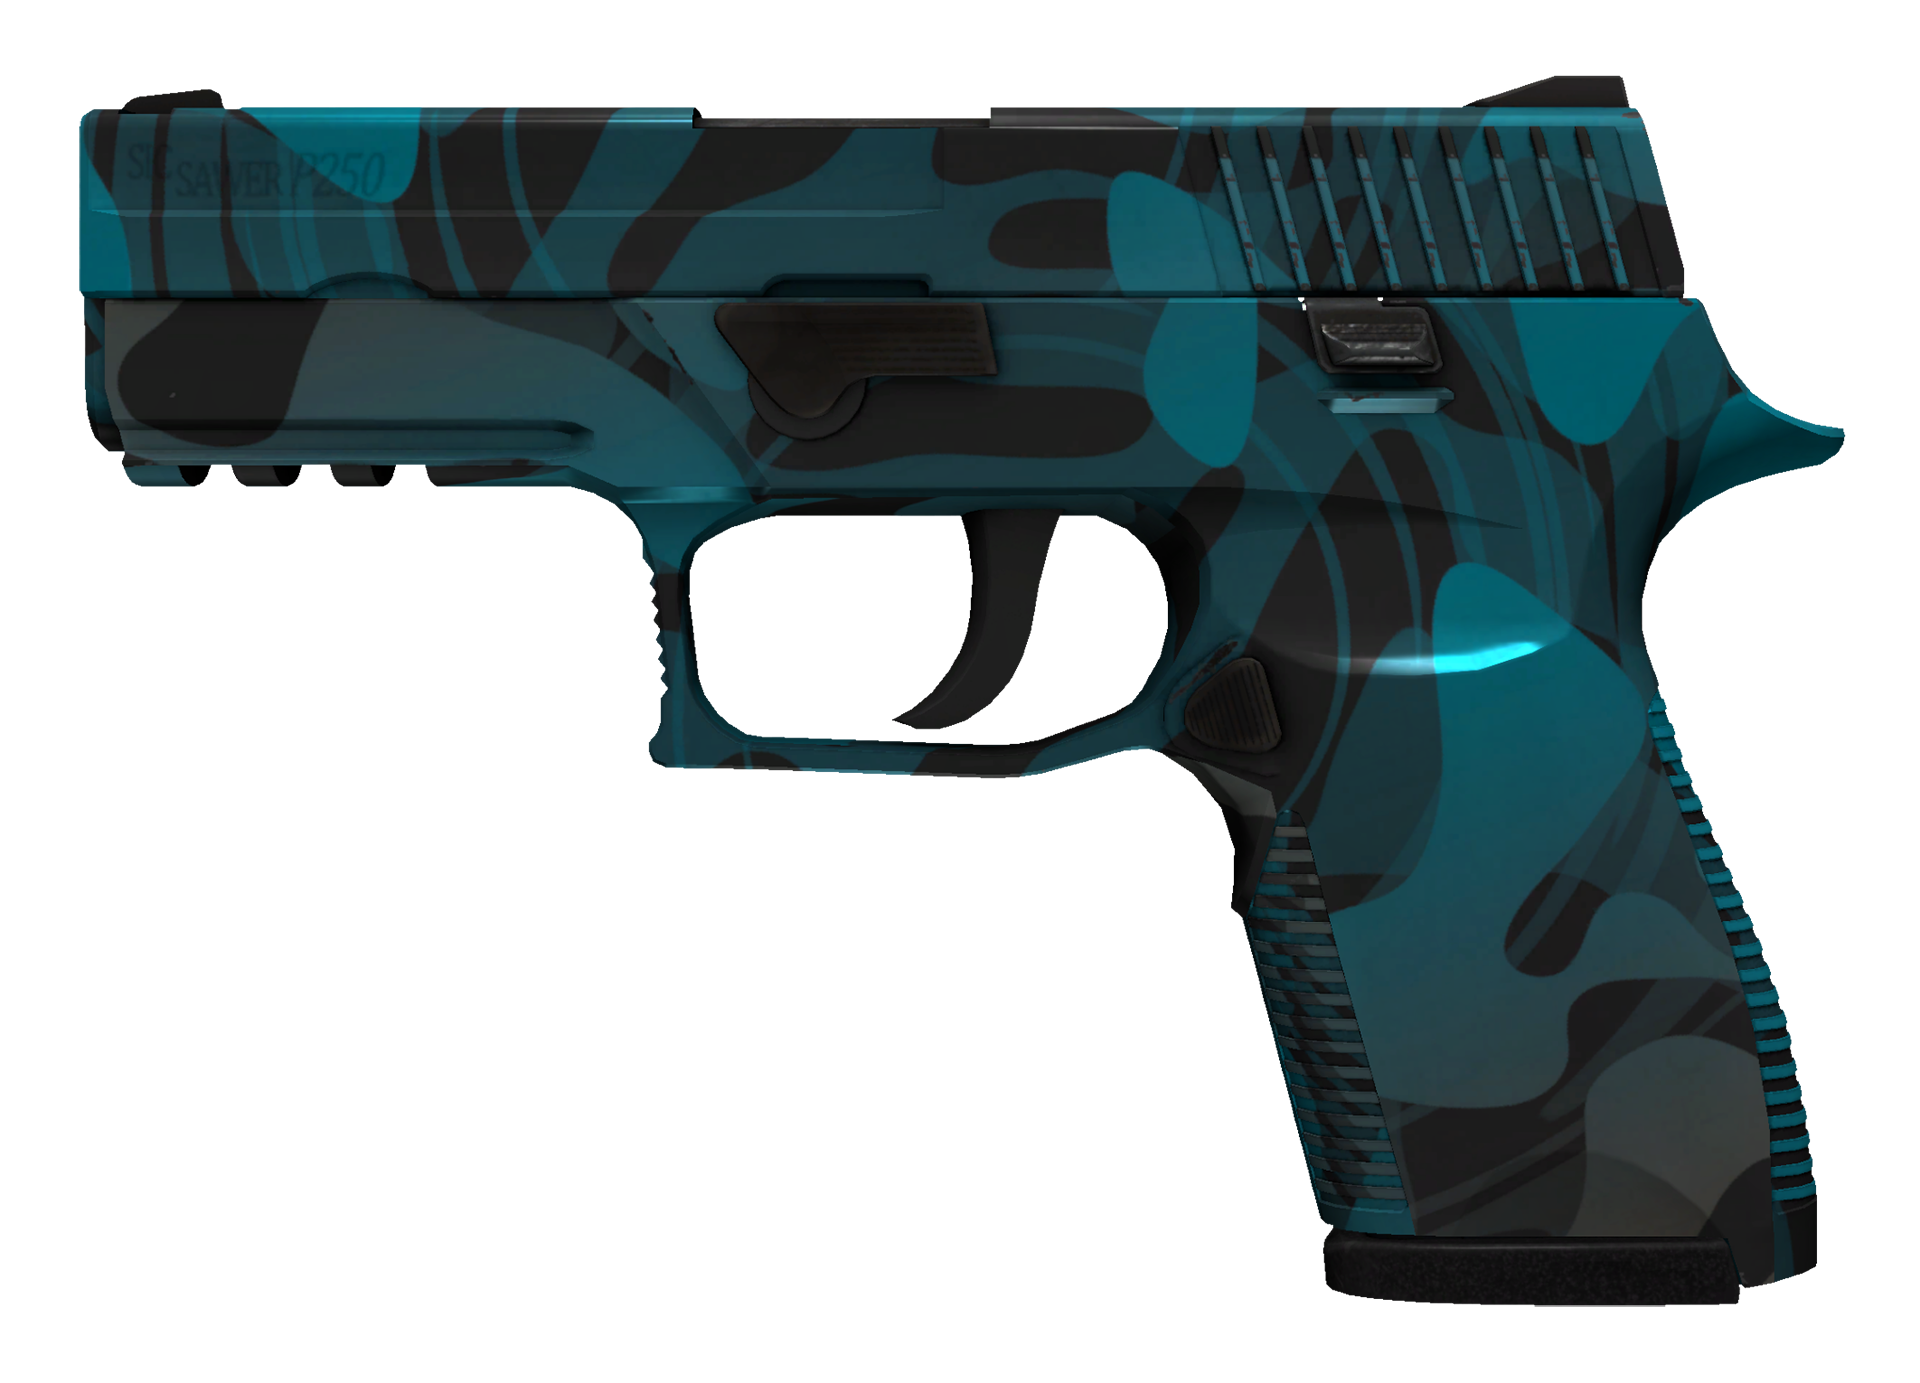 P250 Ripple Large Rendering